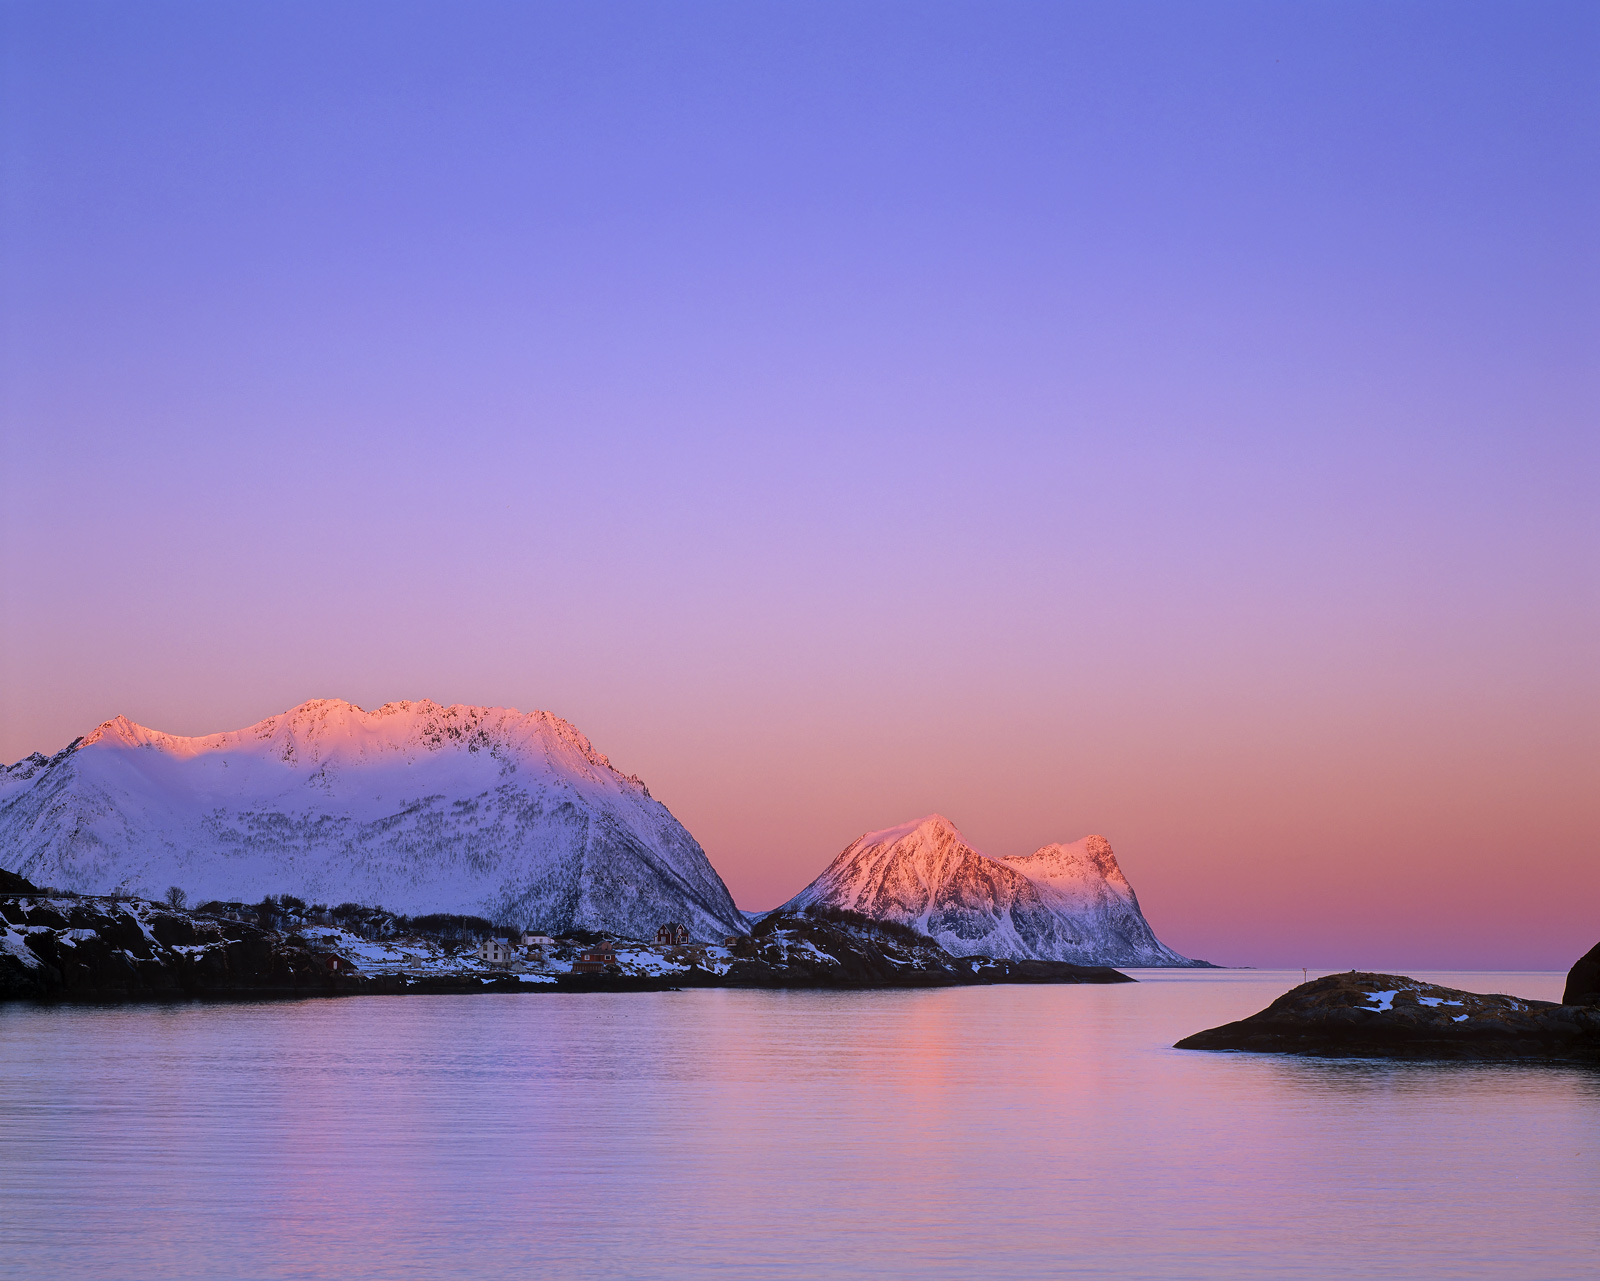 Amazingly some of the most astonishing light we saw was on our very first morning at the coast of Hamn i Senja where we were...